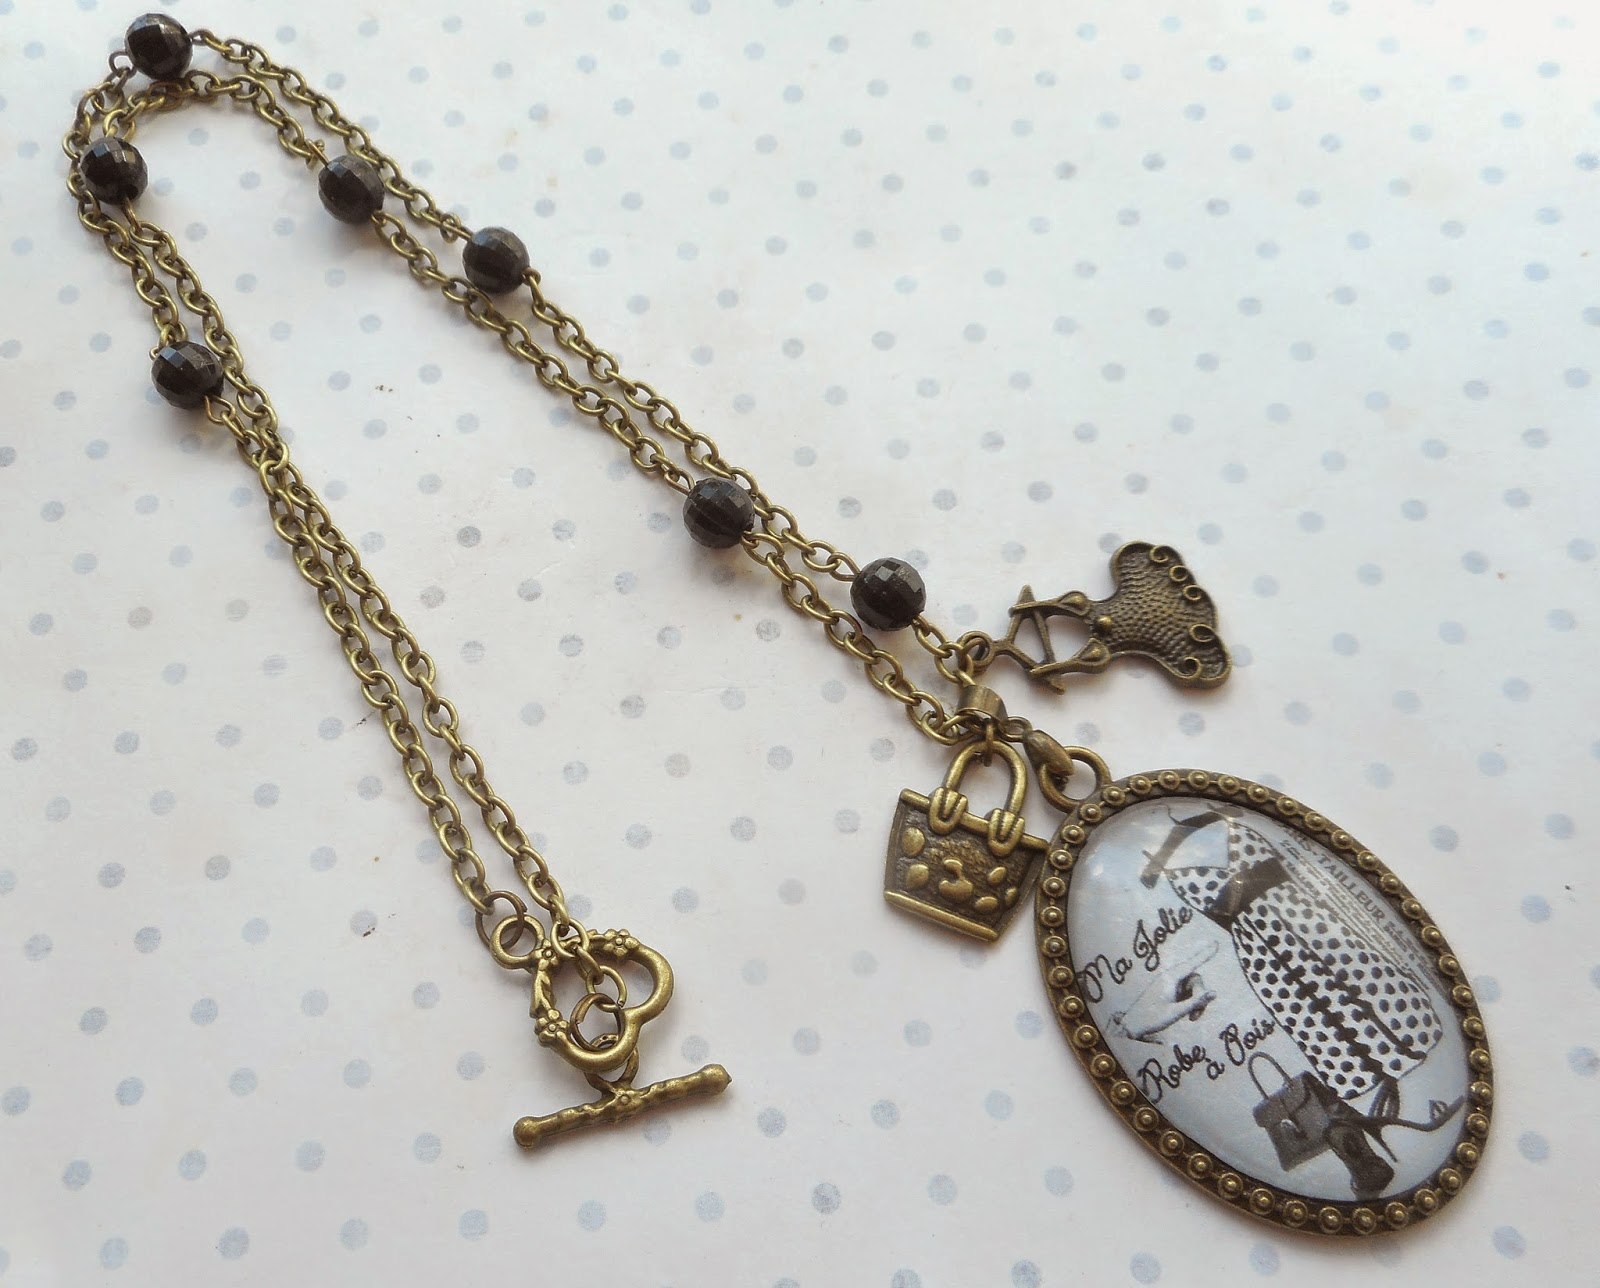 http://www.alittlemarket.com/collier/fr_collier_vintage_bronze_cabochon_verre_ma_jolie_robe_a_pois_creation_miss_coopecoll_-10986069.html